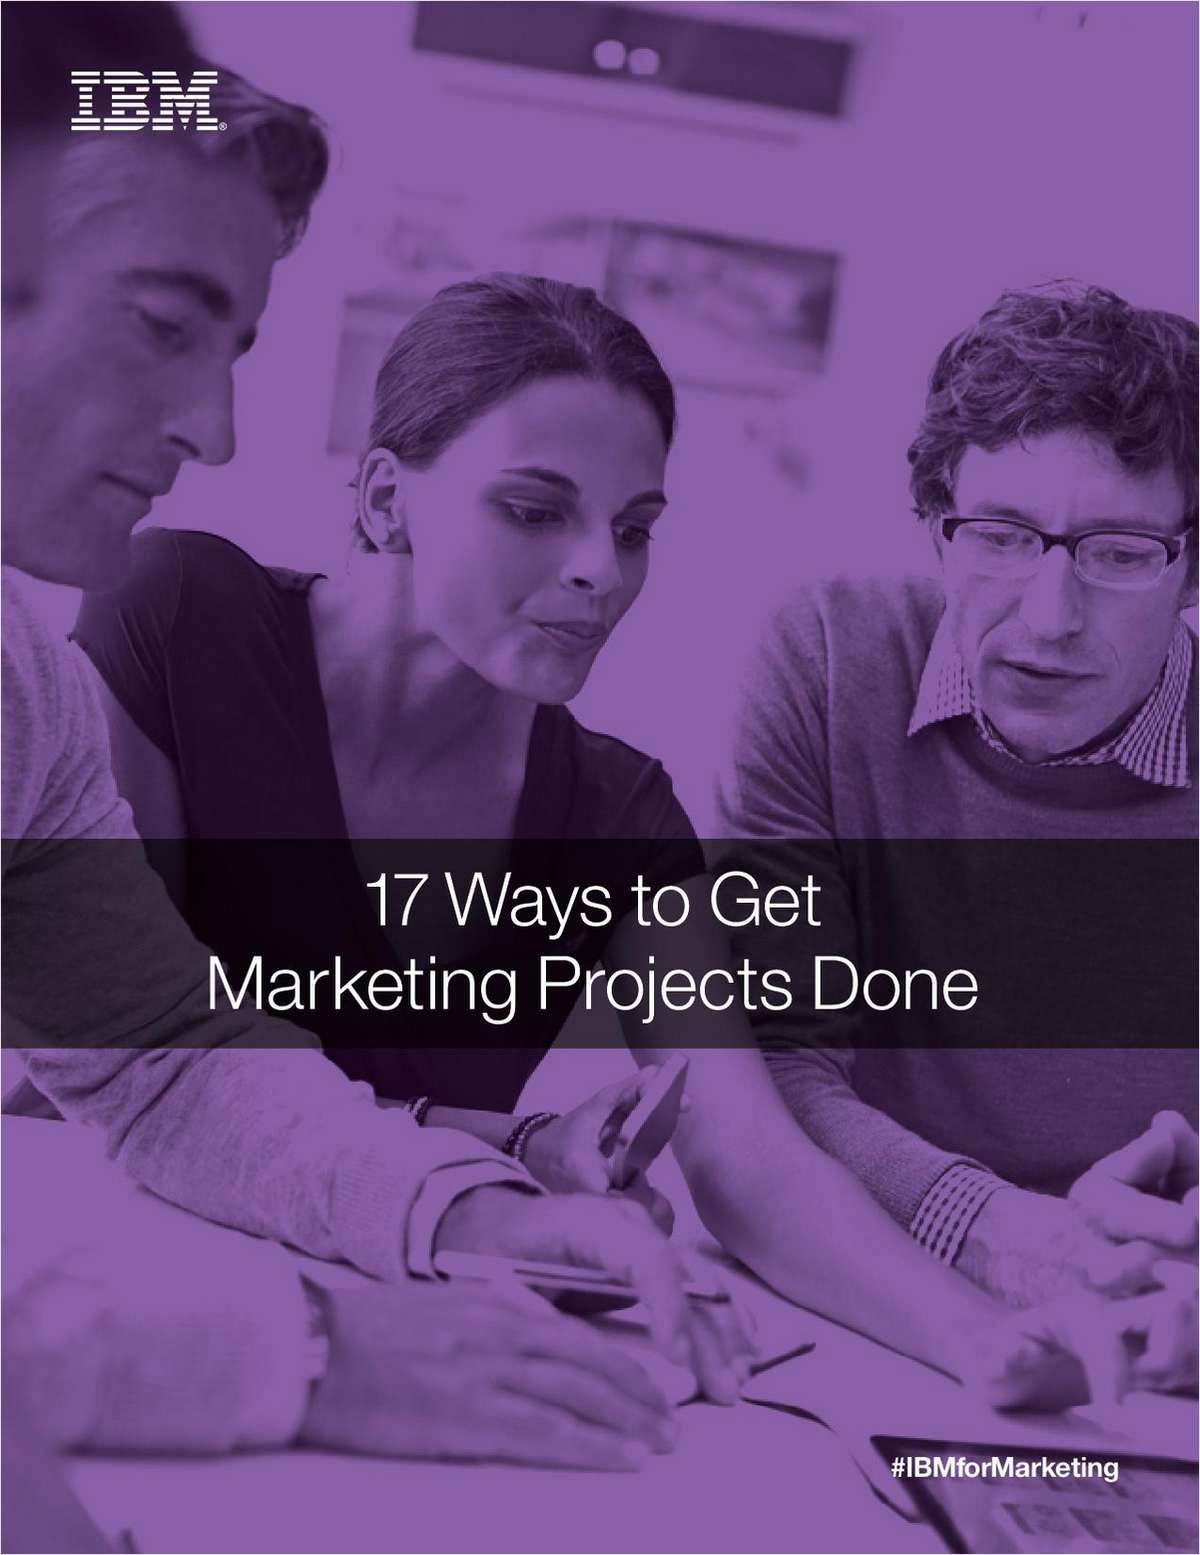 17 Ways to Get Marketing Projects Done